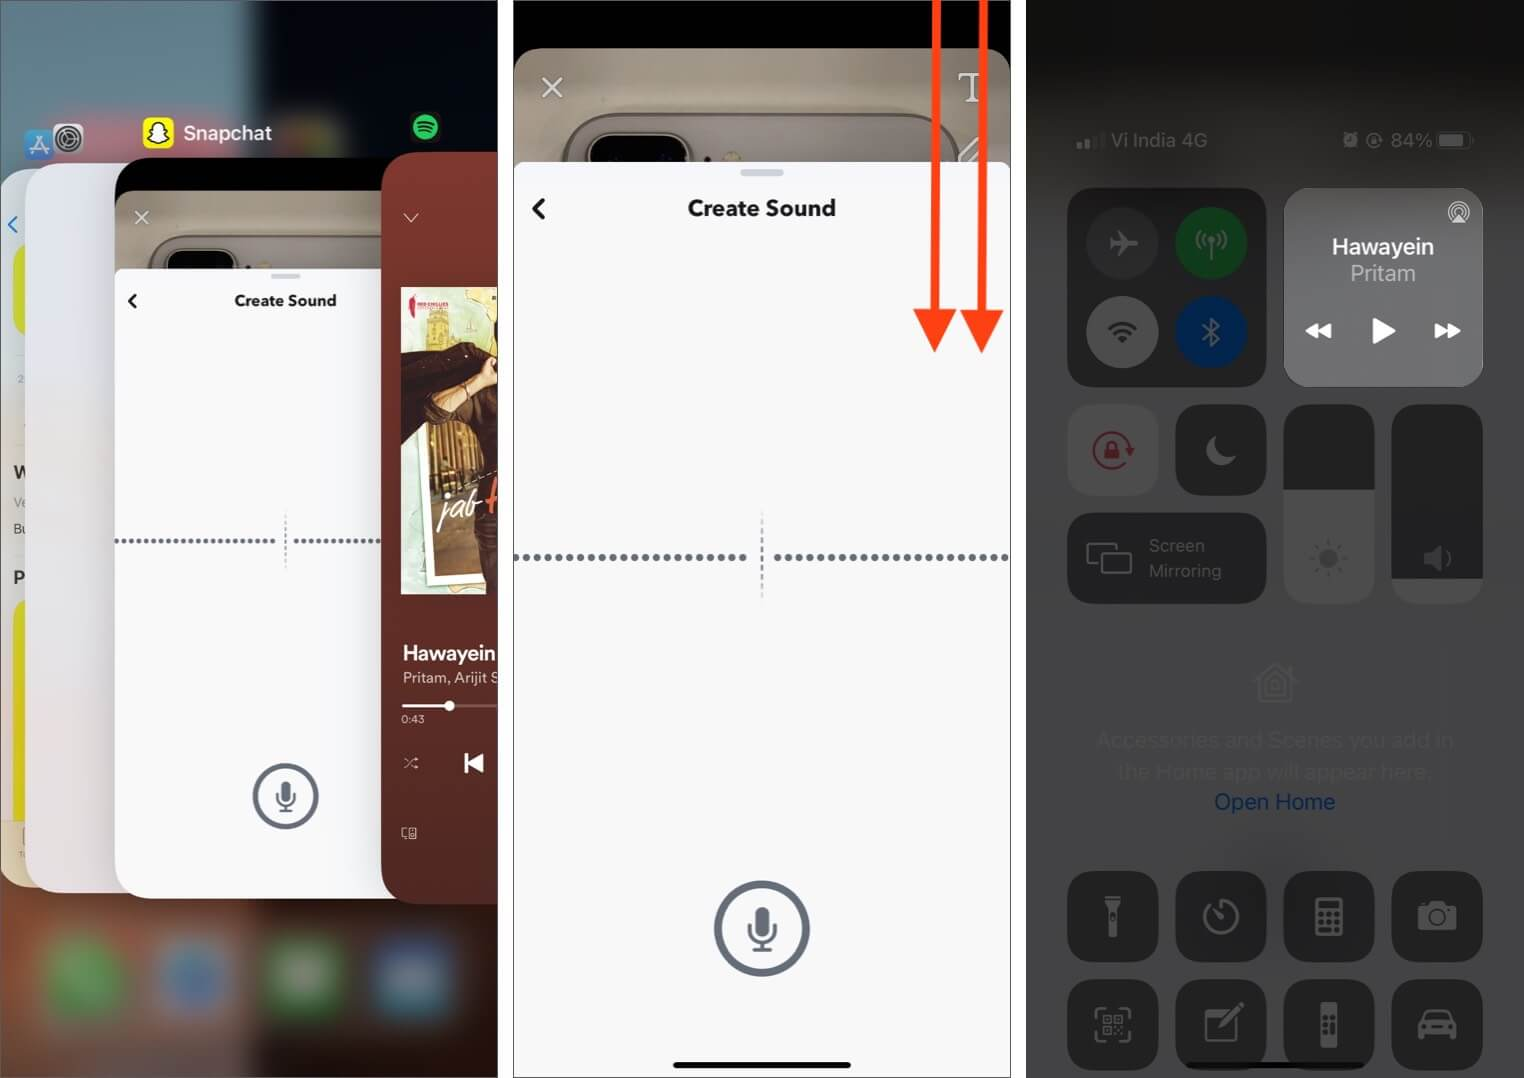 Open App Switcher Tap on Snapchat and Then Open Control Center to Play Music on iPhone